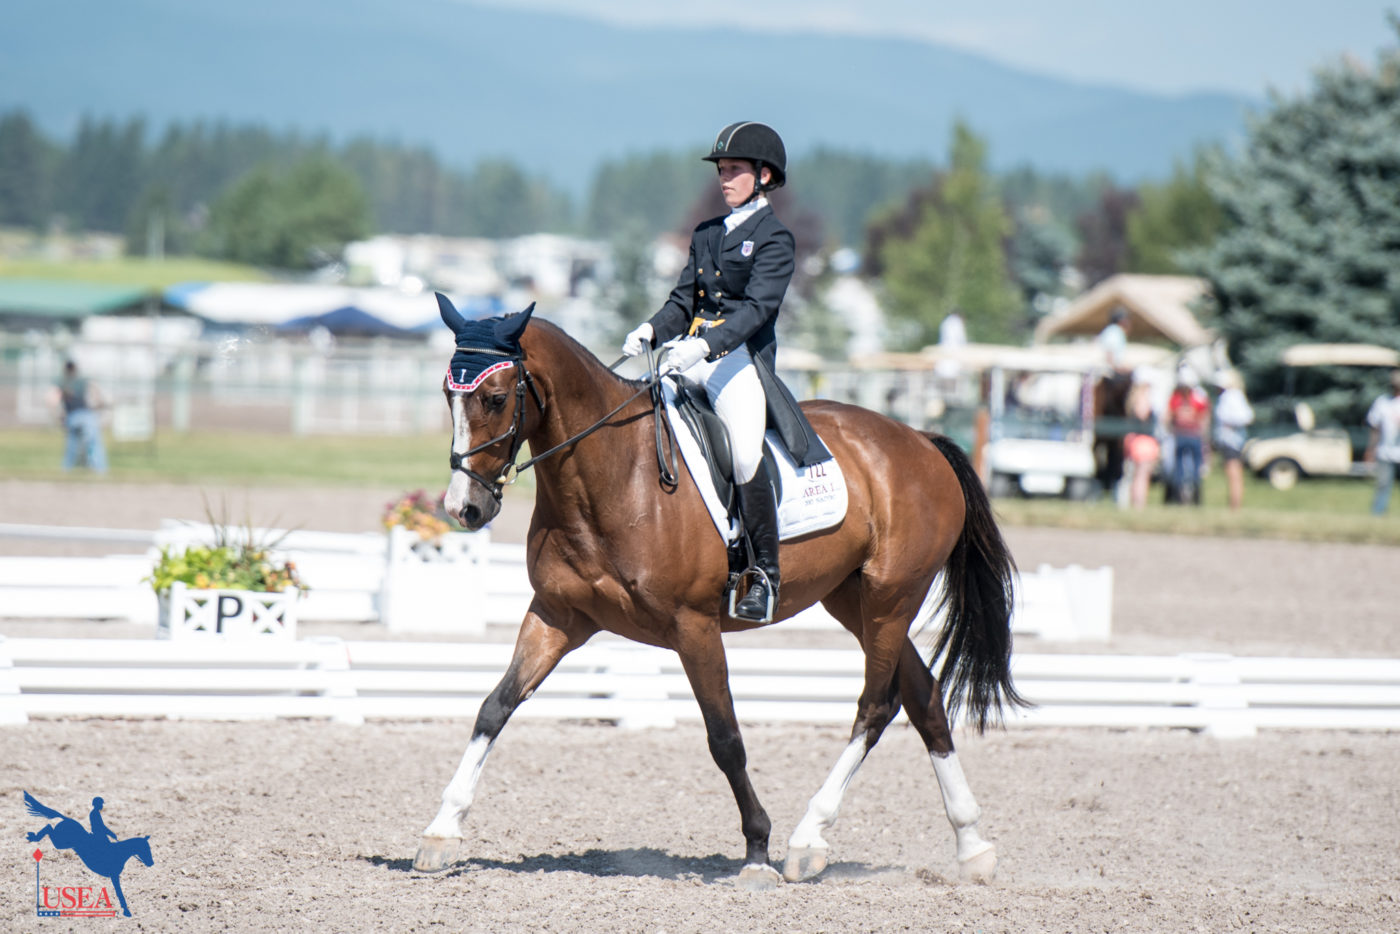 4th - Sloane Pierpont and Indie (Area I)